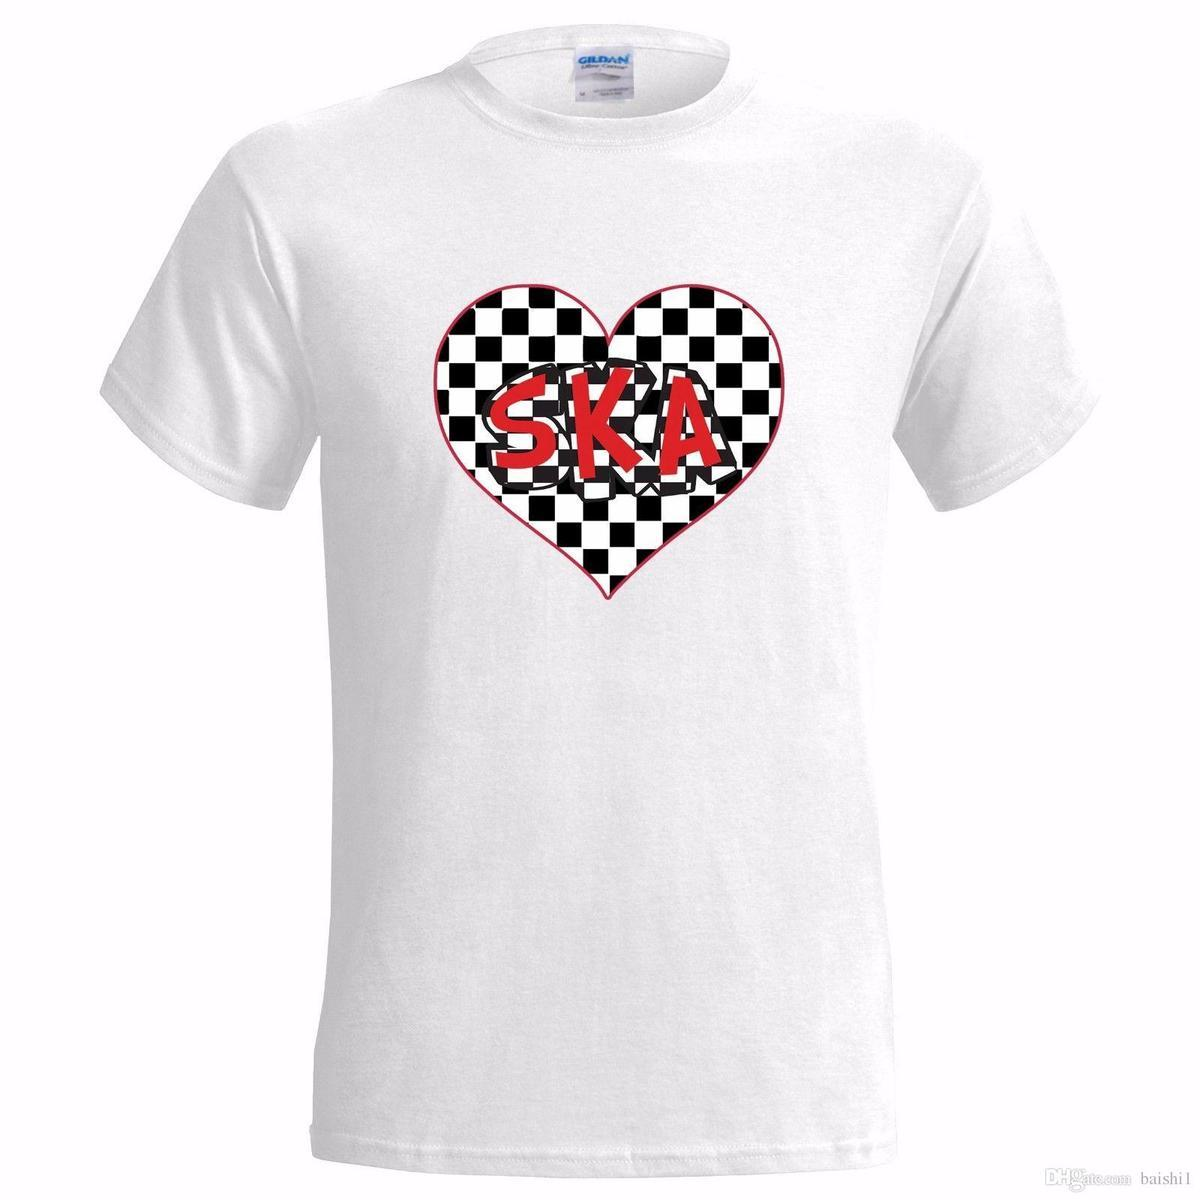 LOVE SKA DESIGN MENS T SHIRT SPECIALI BATTINO FOLLIA THE JABSCO TWO TONE 2 PRESENT T-Shirt in cotone a maniche corte